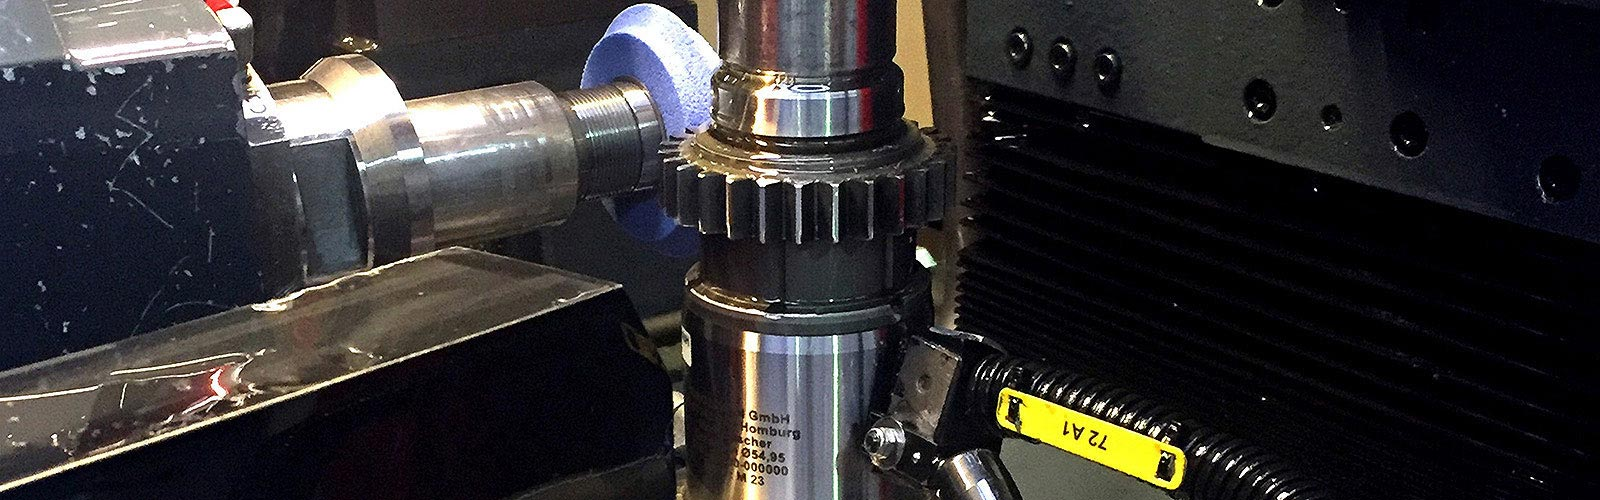 The expanding sleeve mandrel HDDS is becoming the standard for mechanical engineers